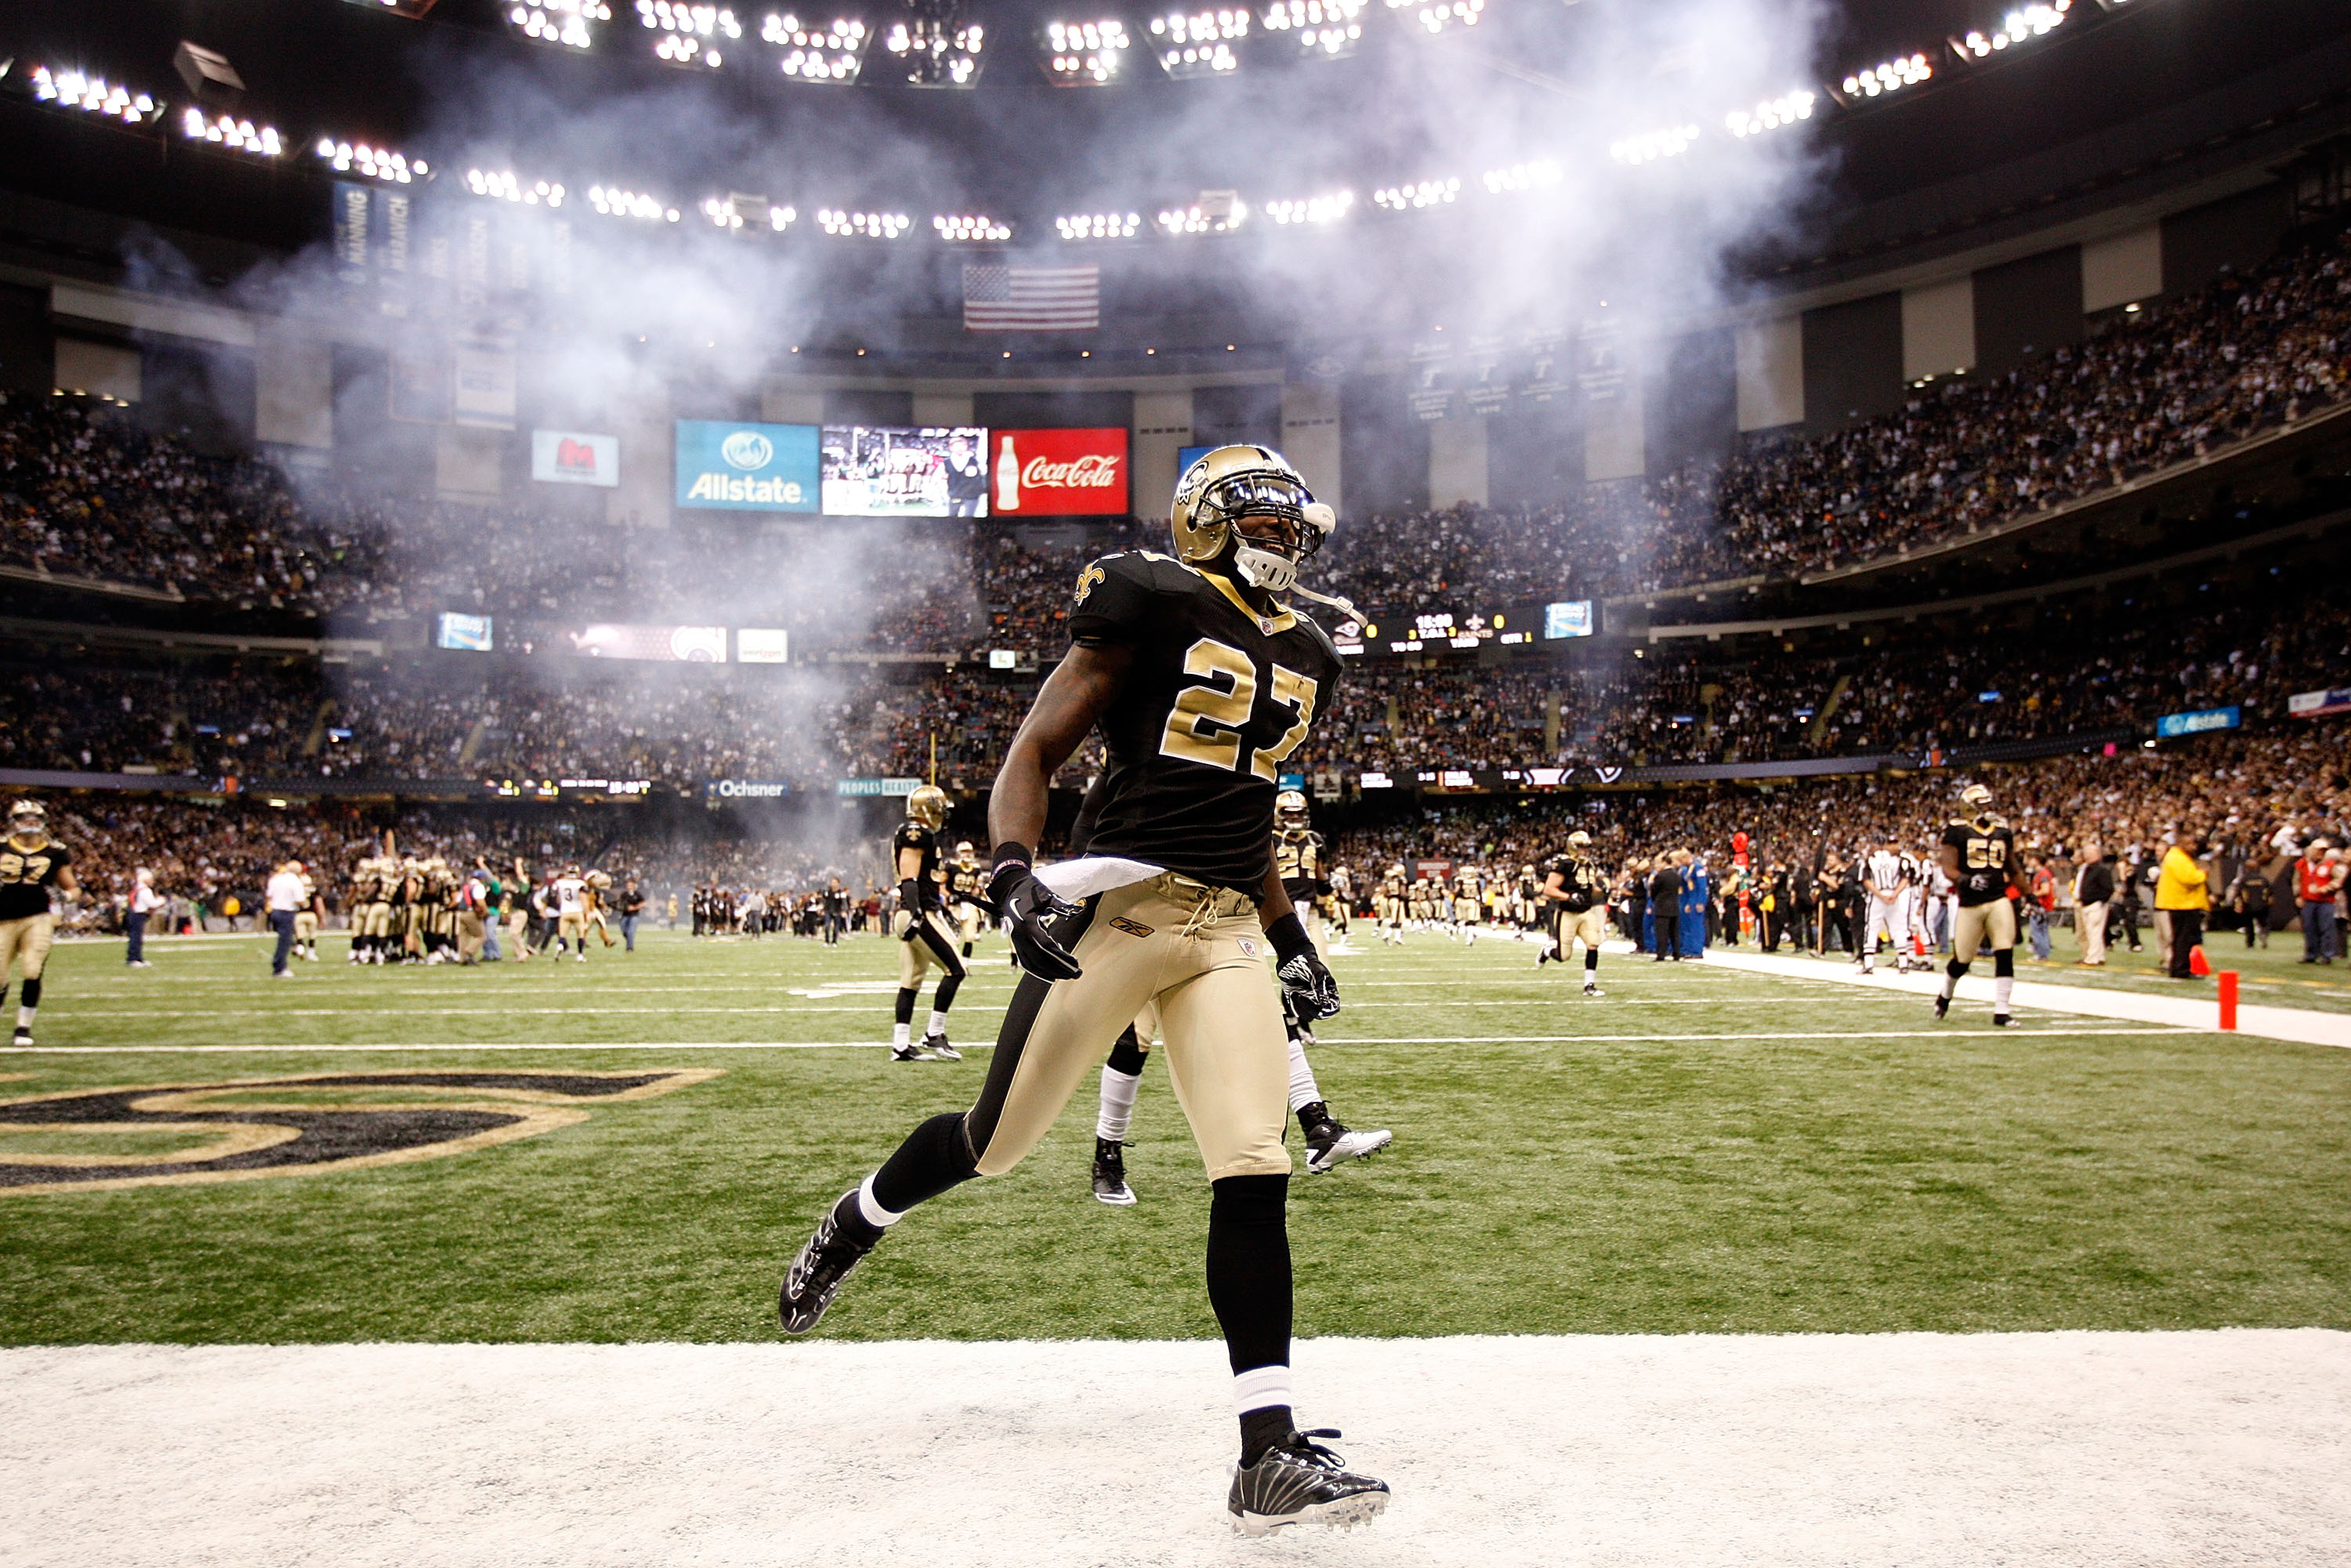 NEW ORLEANS, LA - DECEMBER 12:  Malcom Jenkins #27 of the New Orleans Saints runs onto the field before playing the St. Louis Rams at the Louisiana Superdome on December 12, 2010 in New Orleans, Louisiana.  (Photo by Chris Graythen/Getty Images)